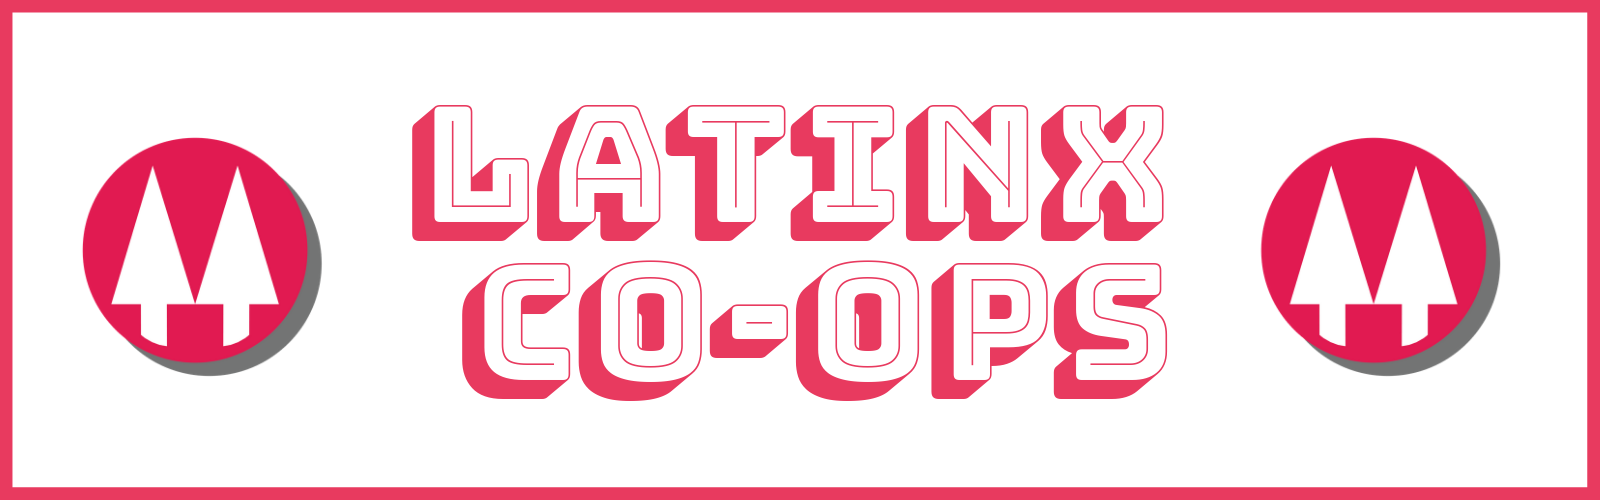 Latinx cooperatives banner